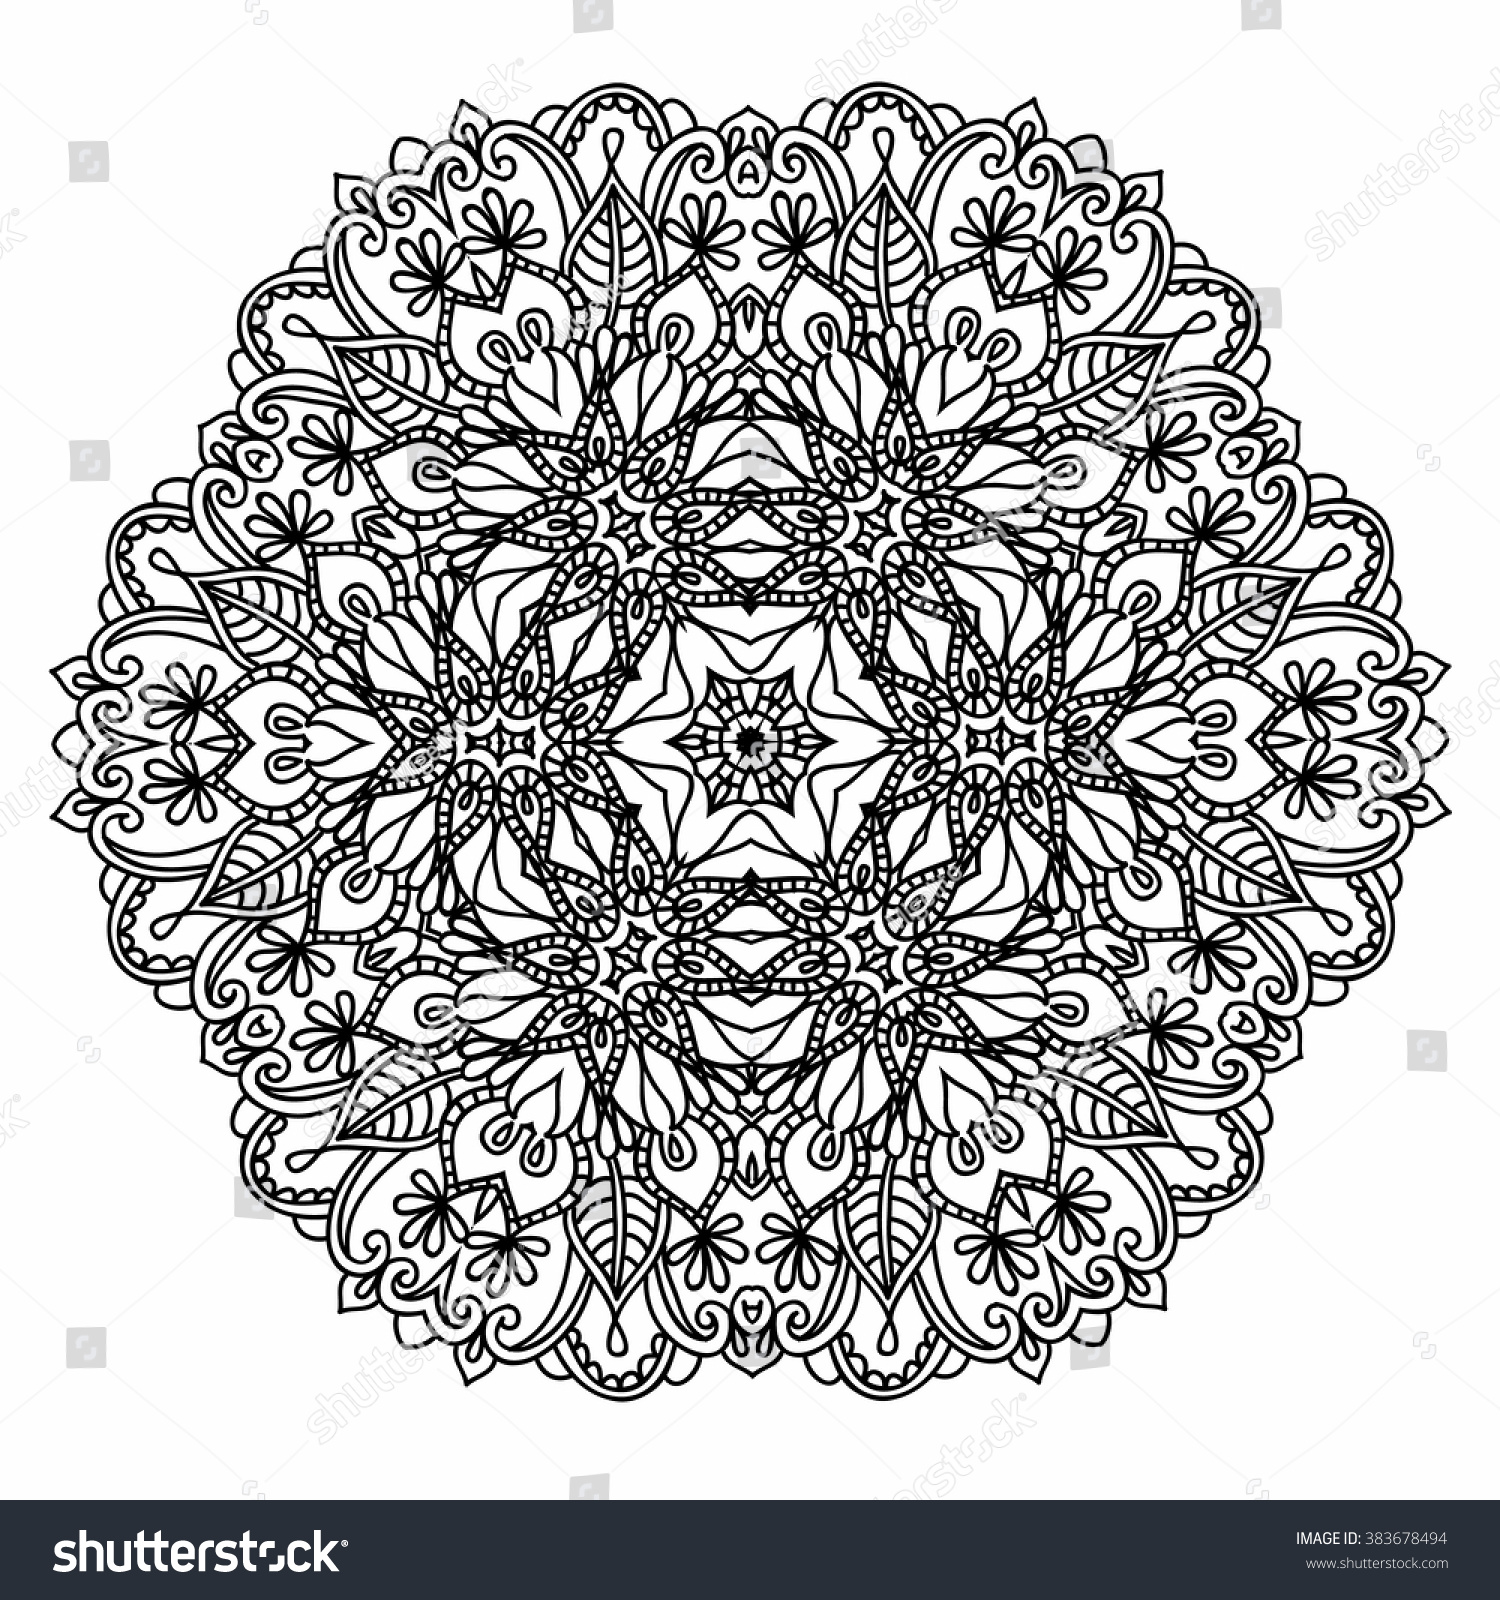 Ornamental Round Pattern Floral Elements Smart Stock